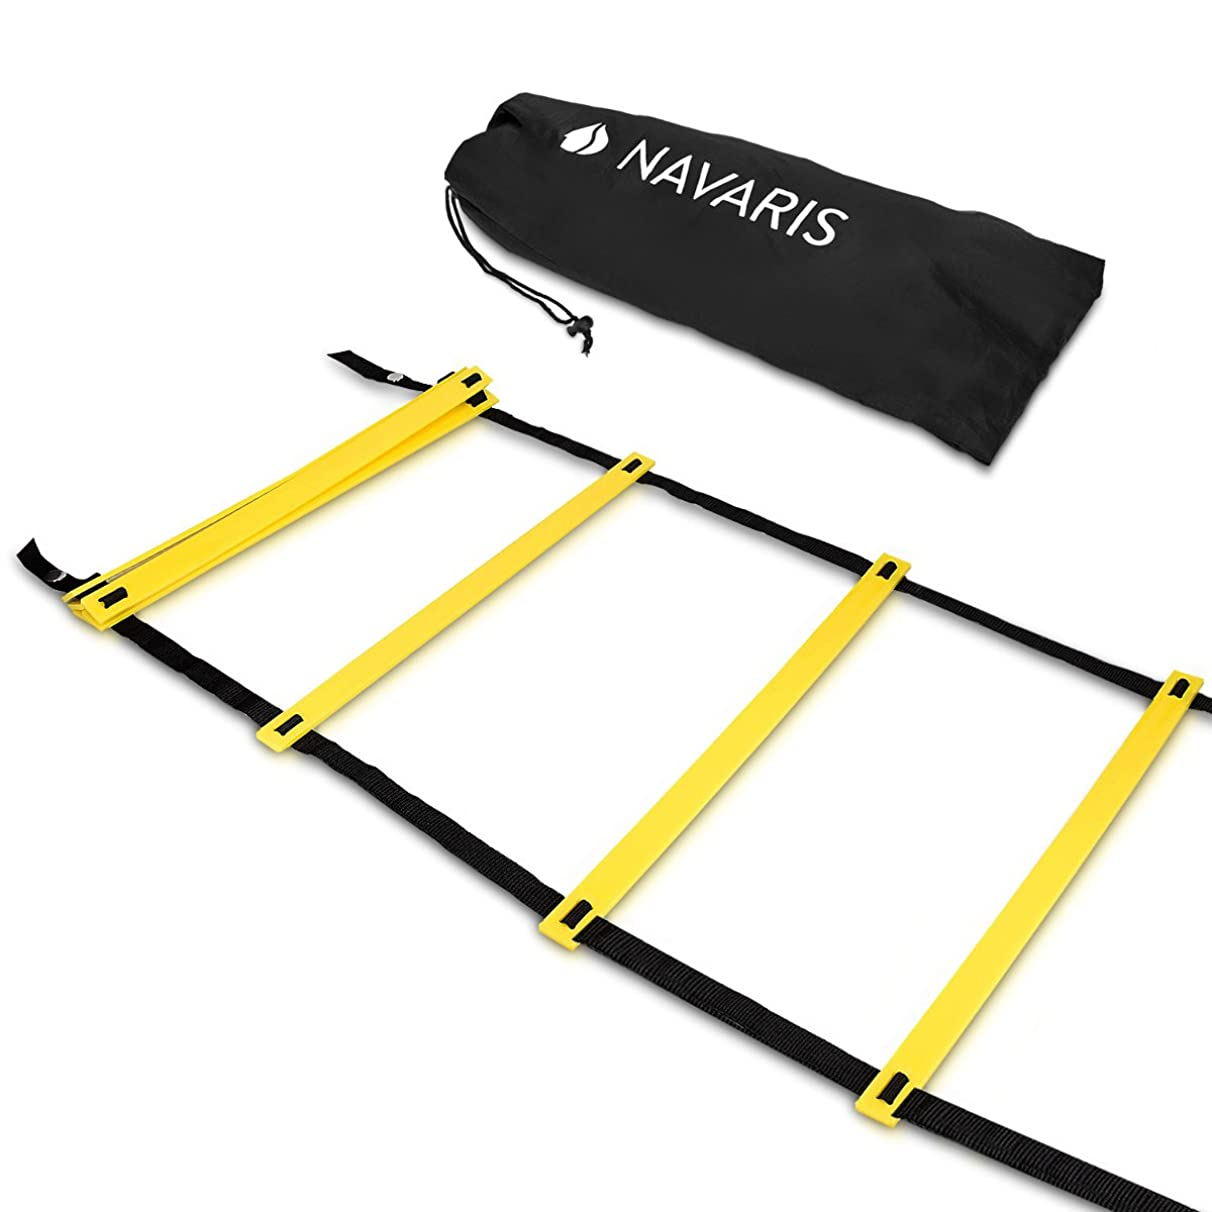 Navaris Agility Ladder 20 Feet - Speed Ladder with 12 Adjustable Rungs - Training Exercise Equipment for Football, Soccer, Tennis - Kids or Adults